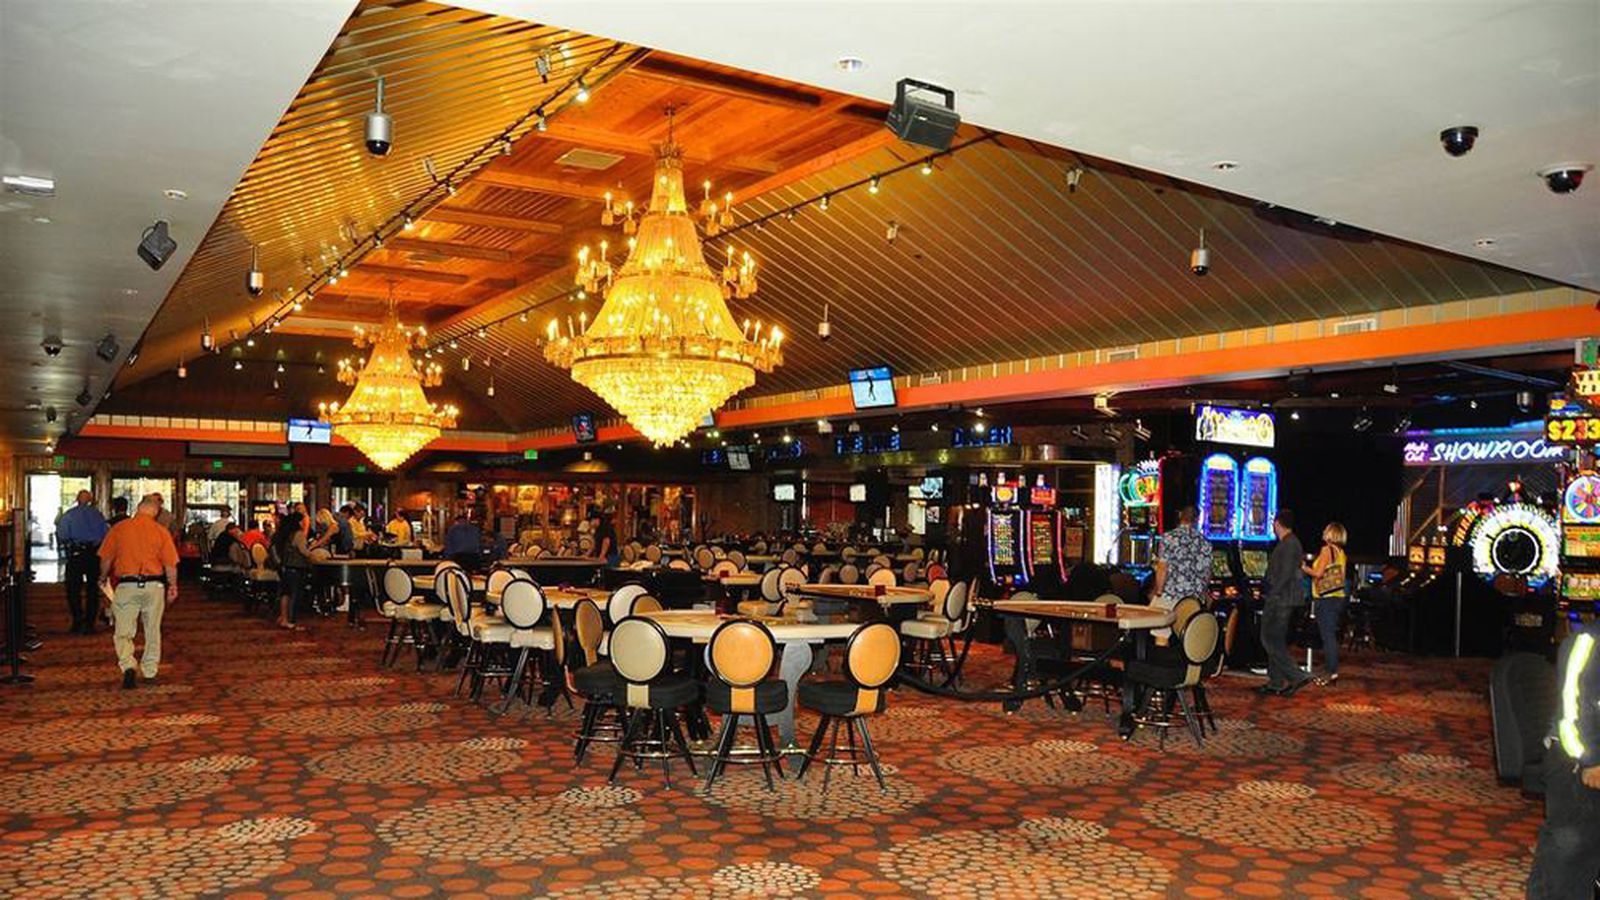 Hooters casino out hive buzzes in at holiday inn eater vegas - The hive inn hotel ...